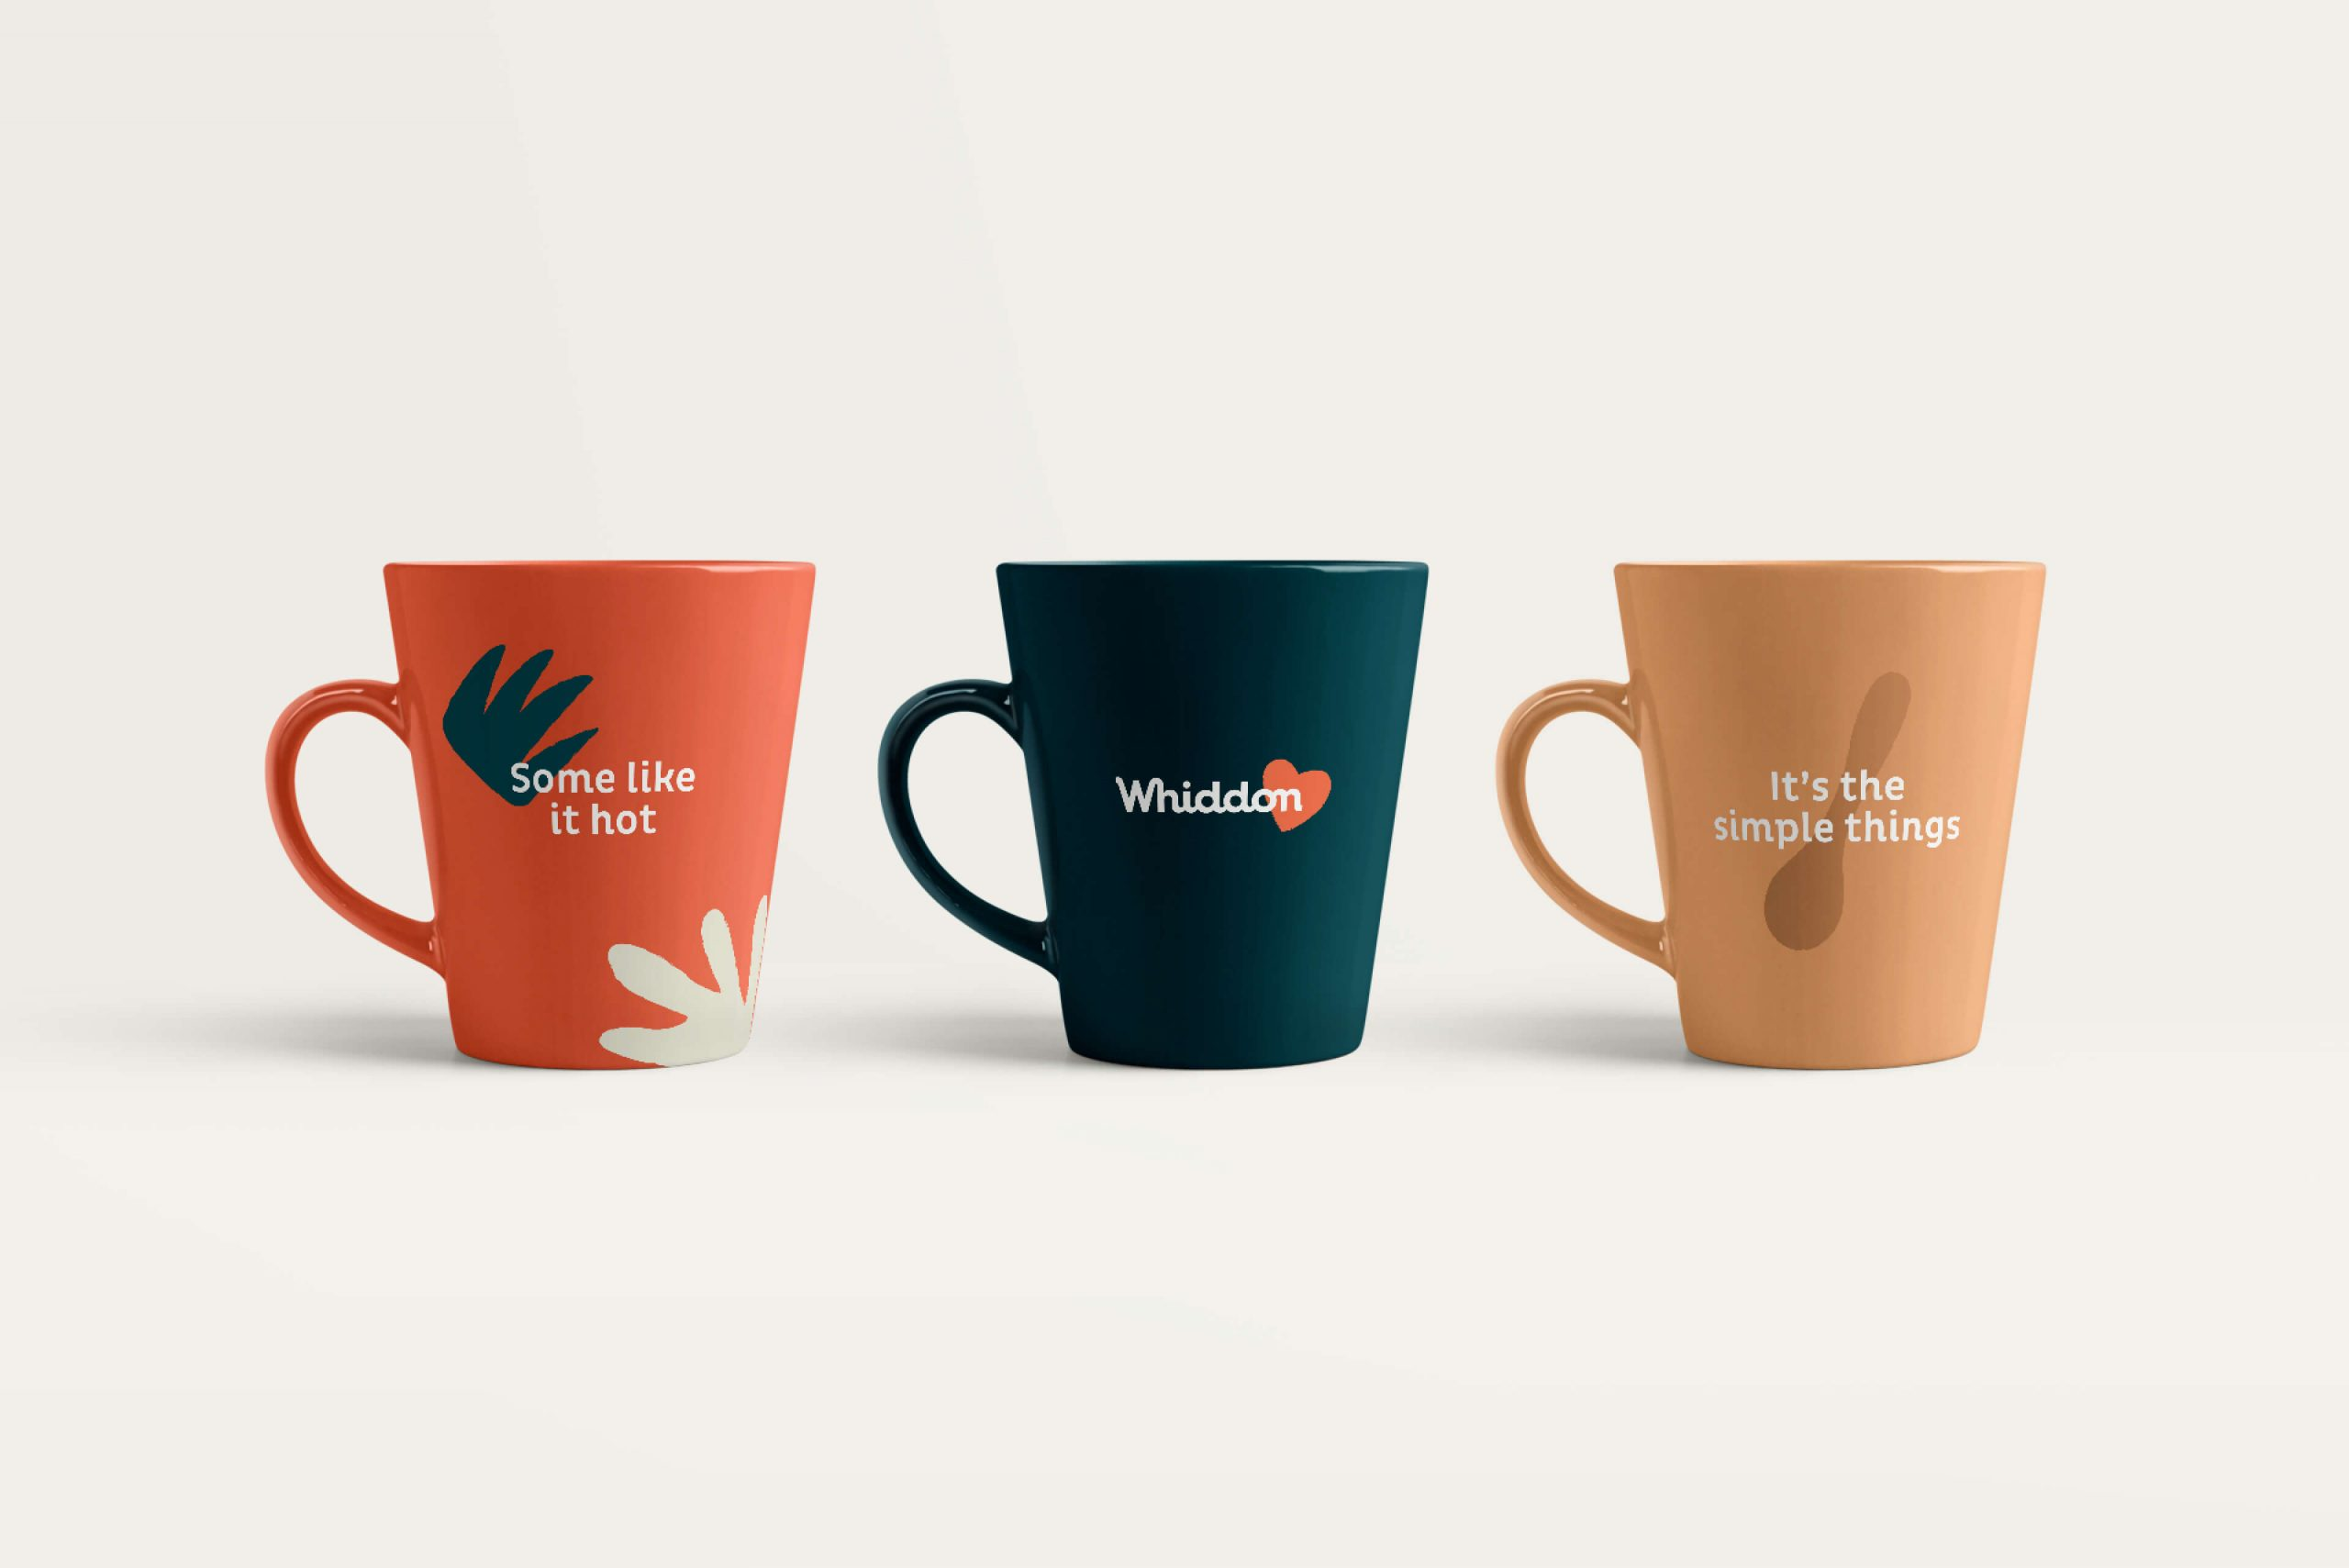 Whiddon Brand Refresh - branded mugs with tone of voice statements